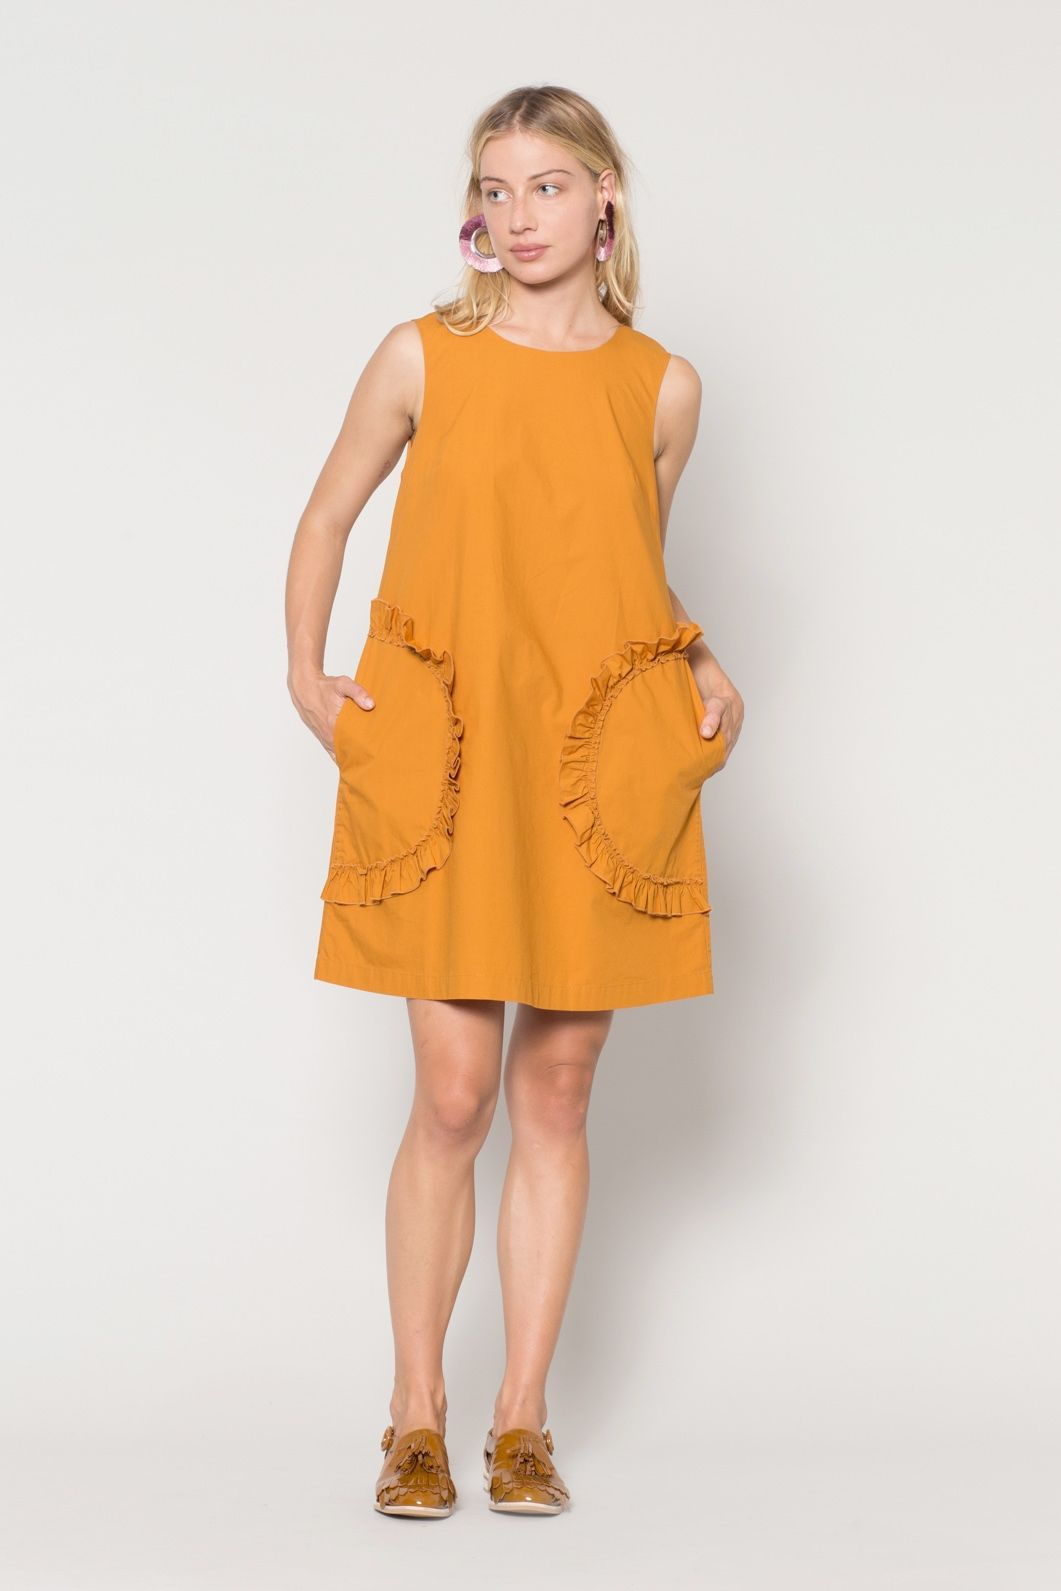 67a340da90 Gorman Online    All That Shift Dress - Claire Johnson + Gorman - shop by